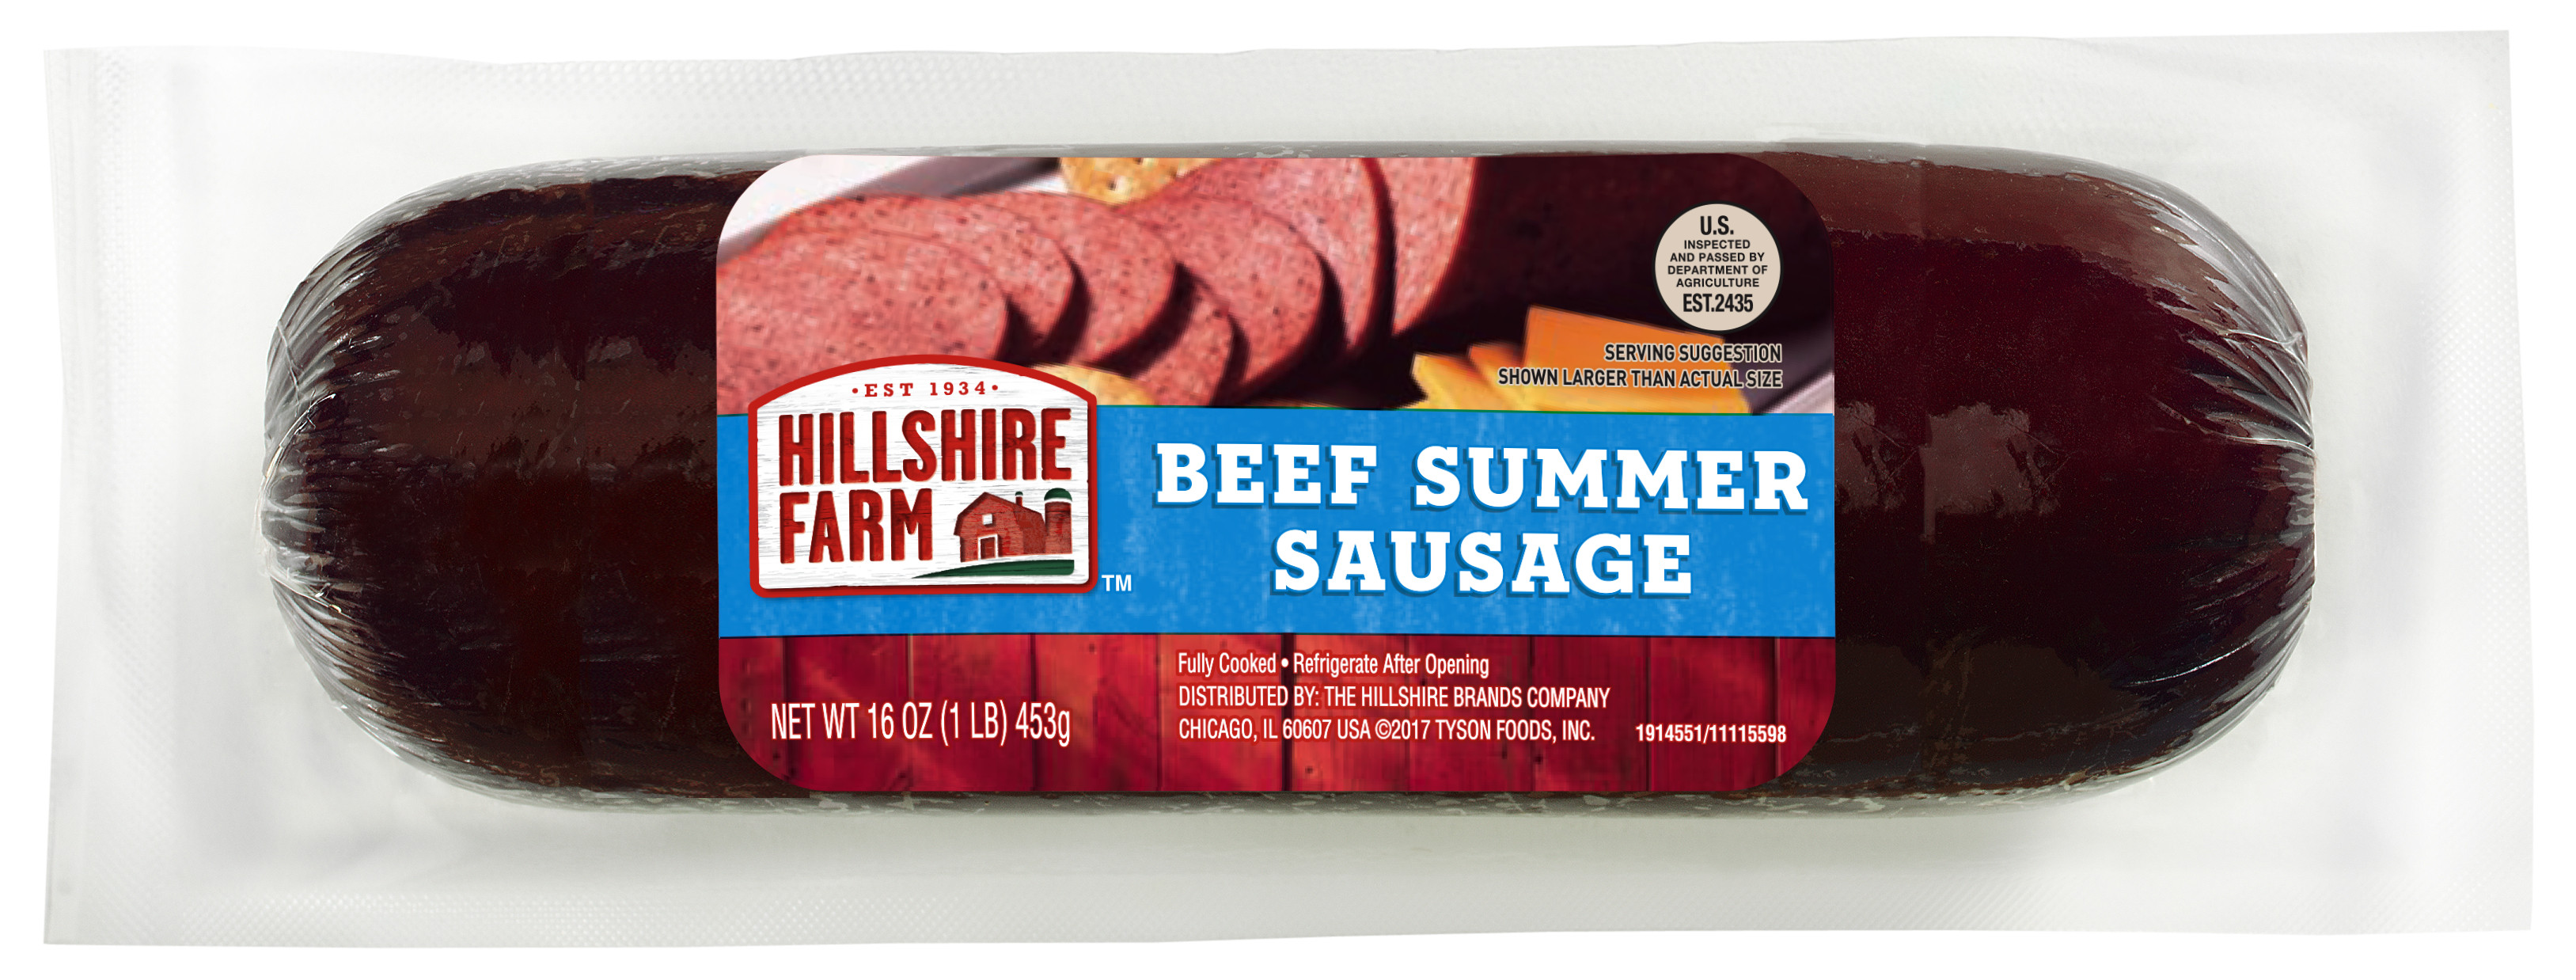 Hillshire Farms Beef Summer Sausage  how much is 1 oz of summer sausage